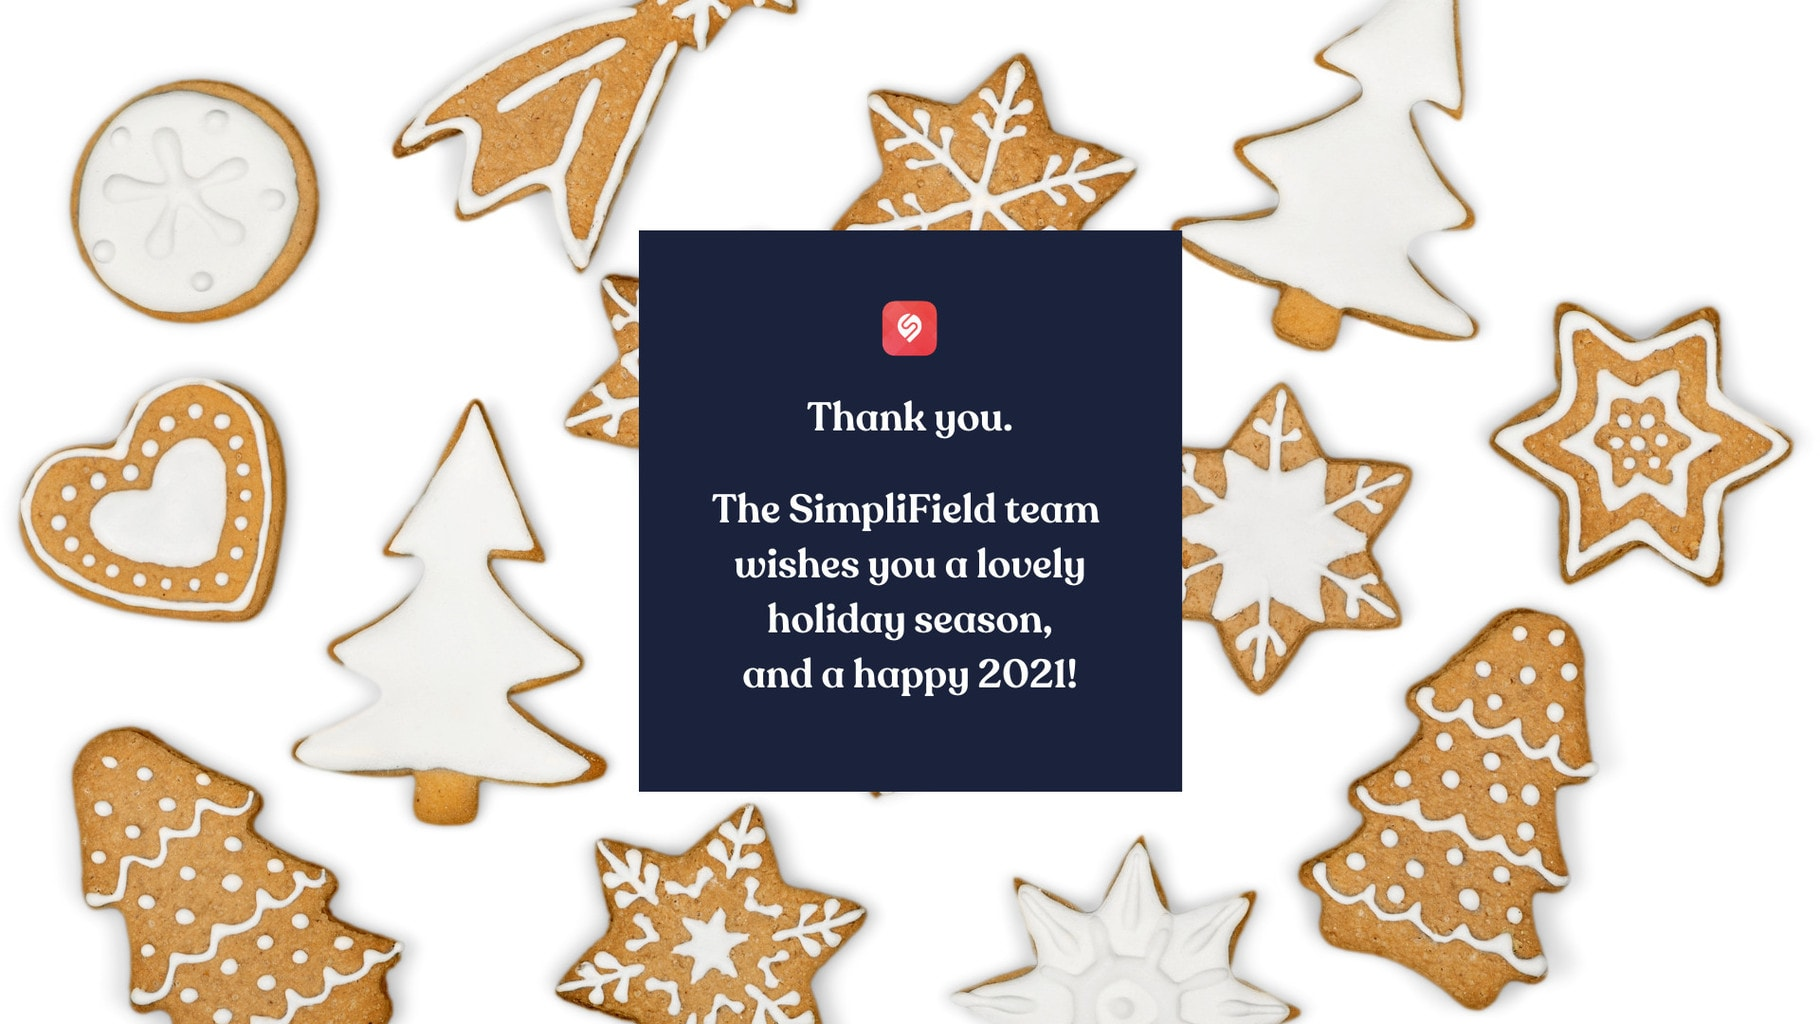 Thank you for making these charitable donations with us. We wish you a lovely holiday season, and a happy 2021!